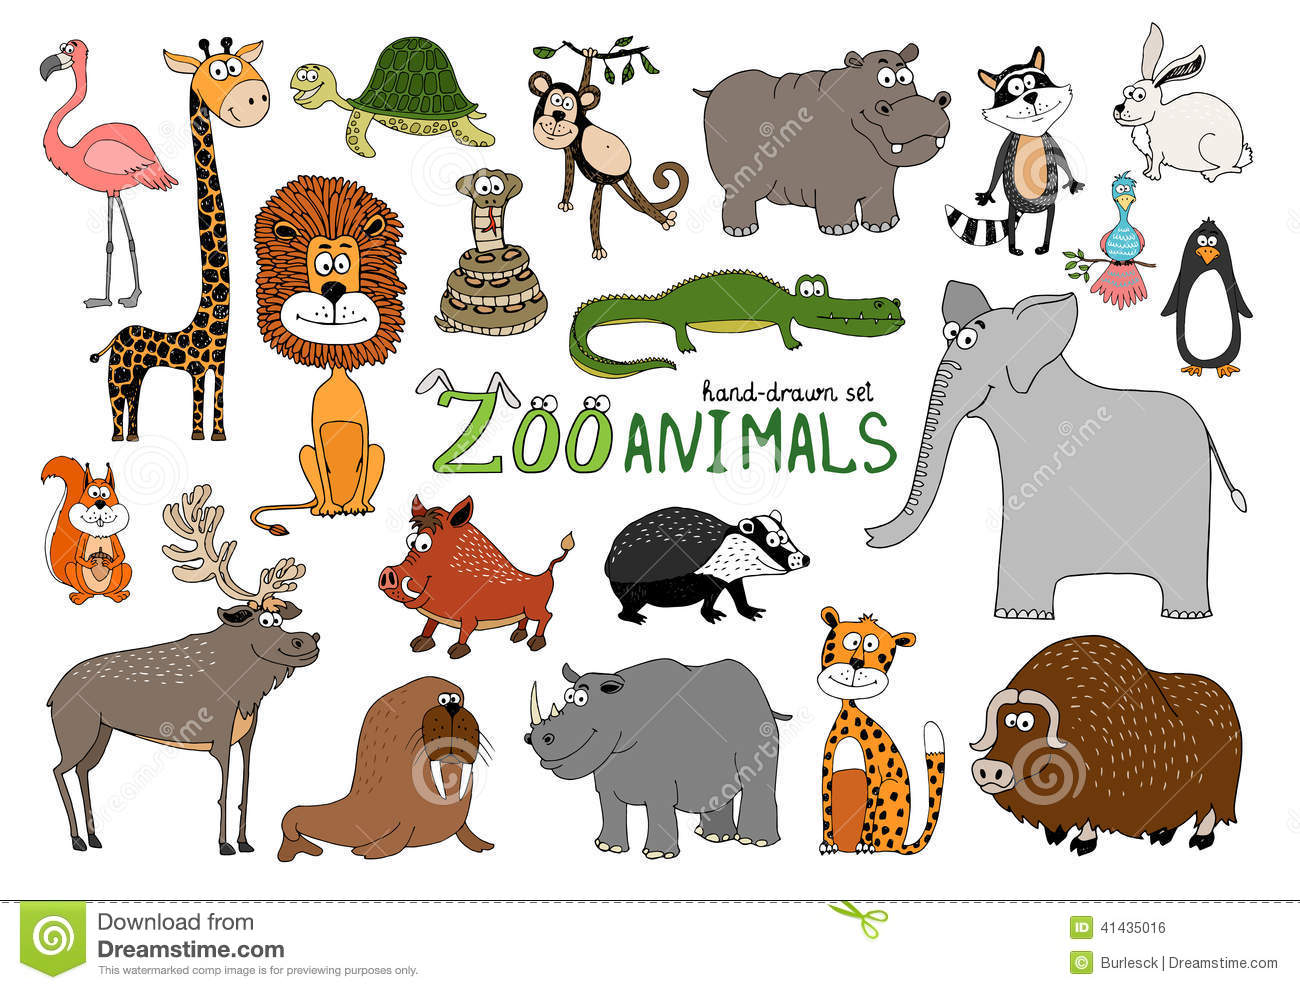 Image of: Animal Coloring Set Of Handdrawn Zoo Animals Dreamstimecom Set Of Handdrawn Zoo Animals Stock Vector Illustration Of